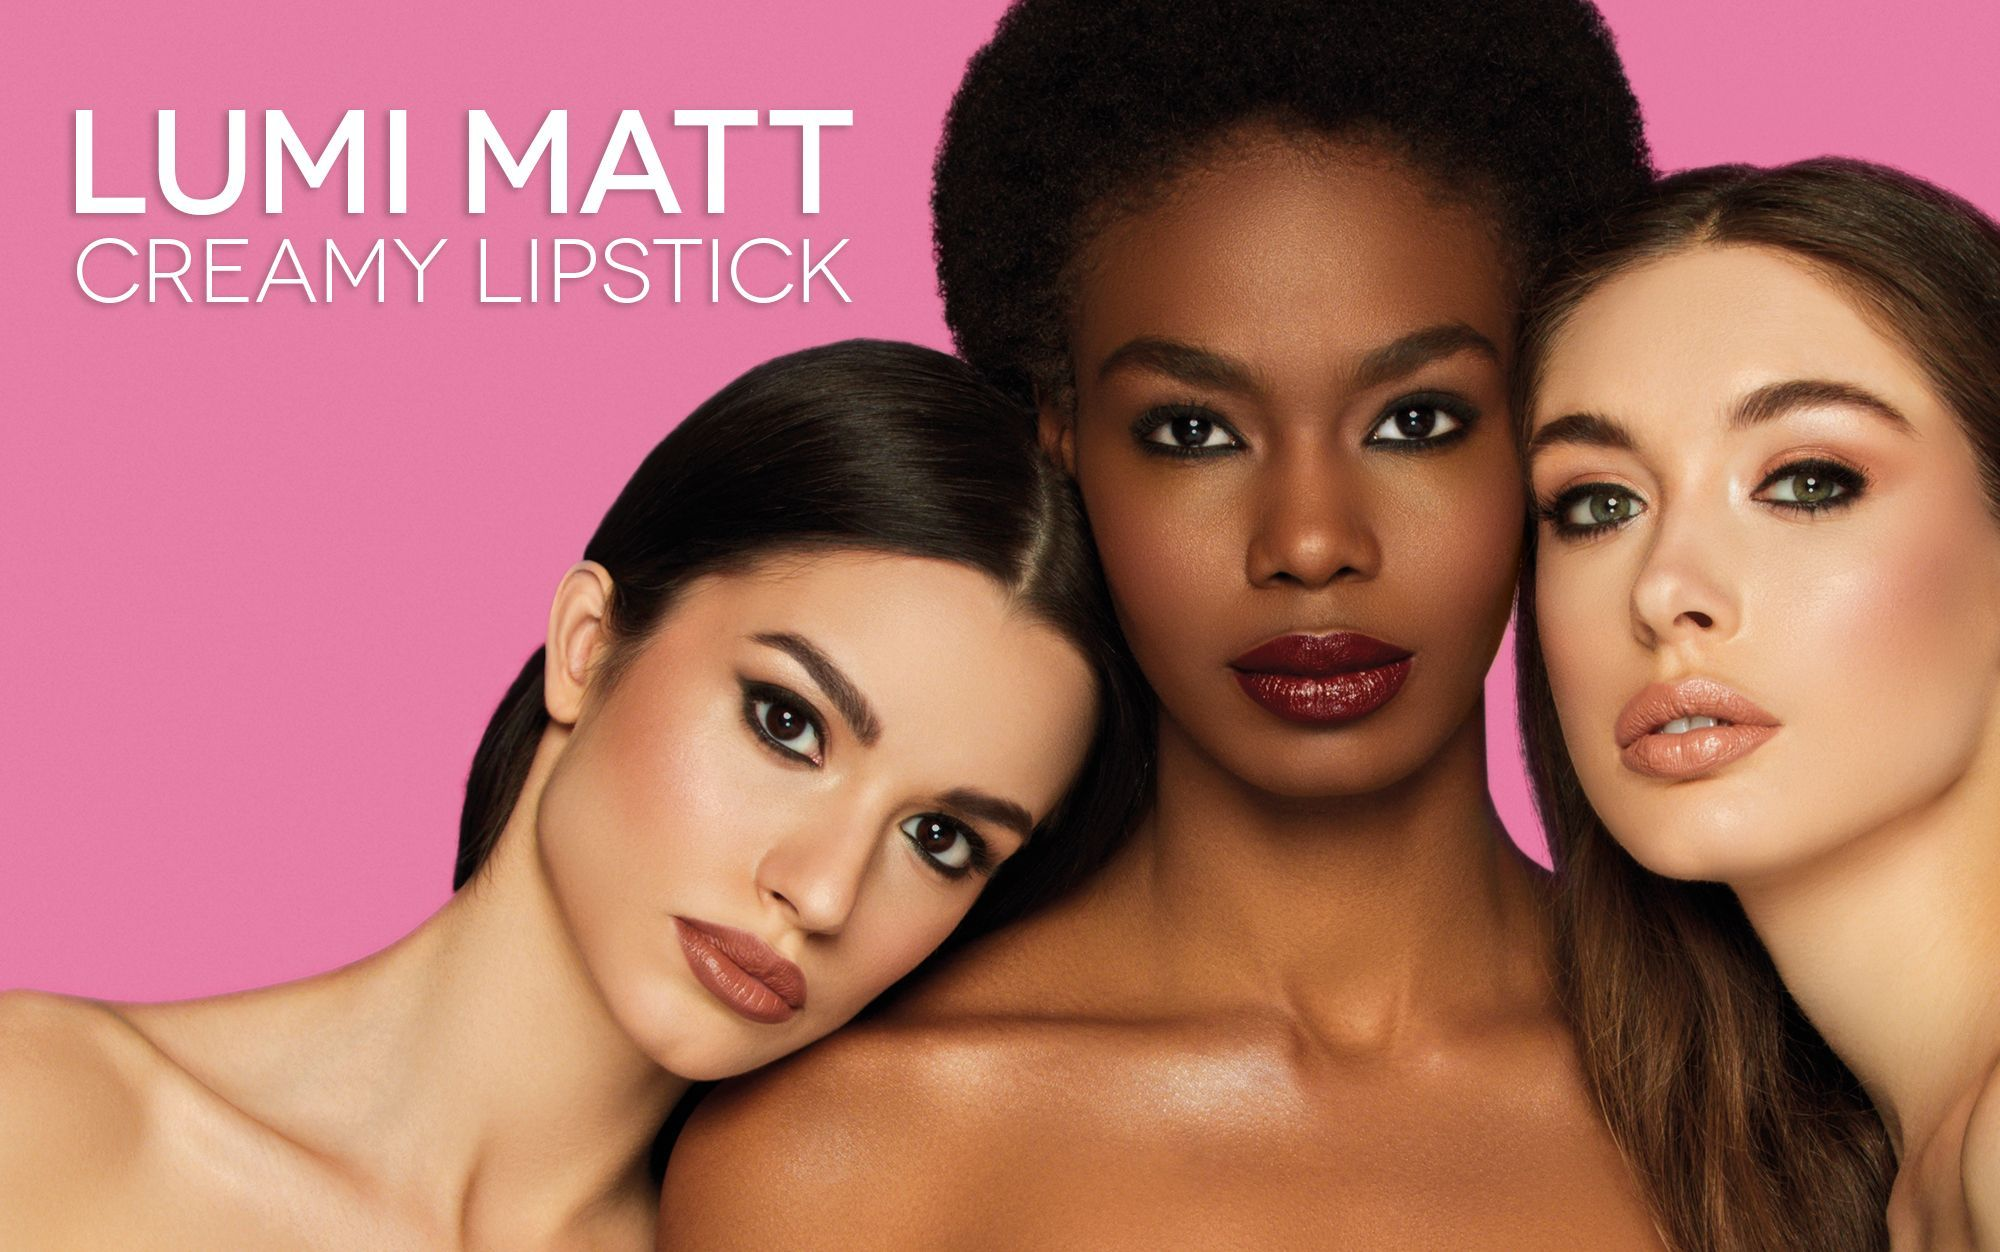 LUMI MATT CREAMY LIPSTICK NEW IN